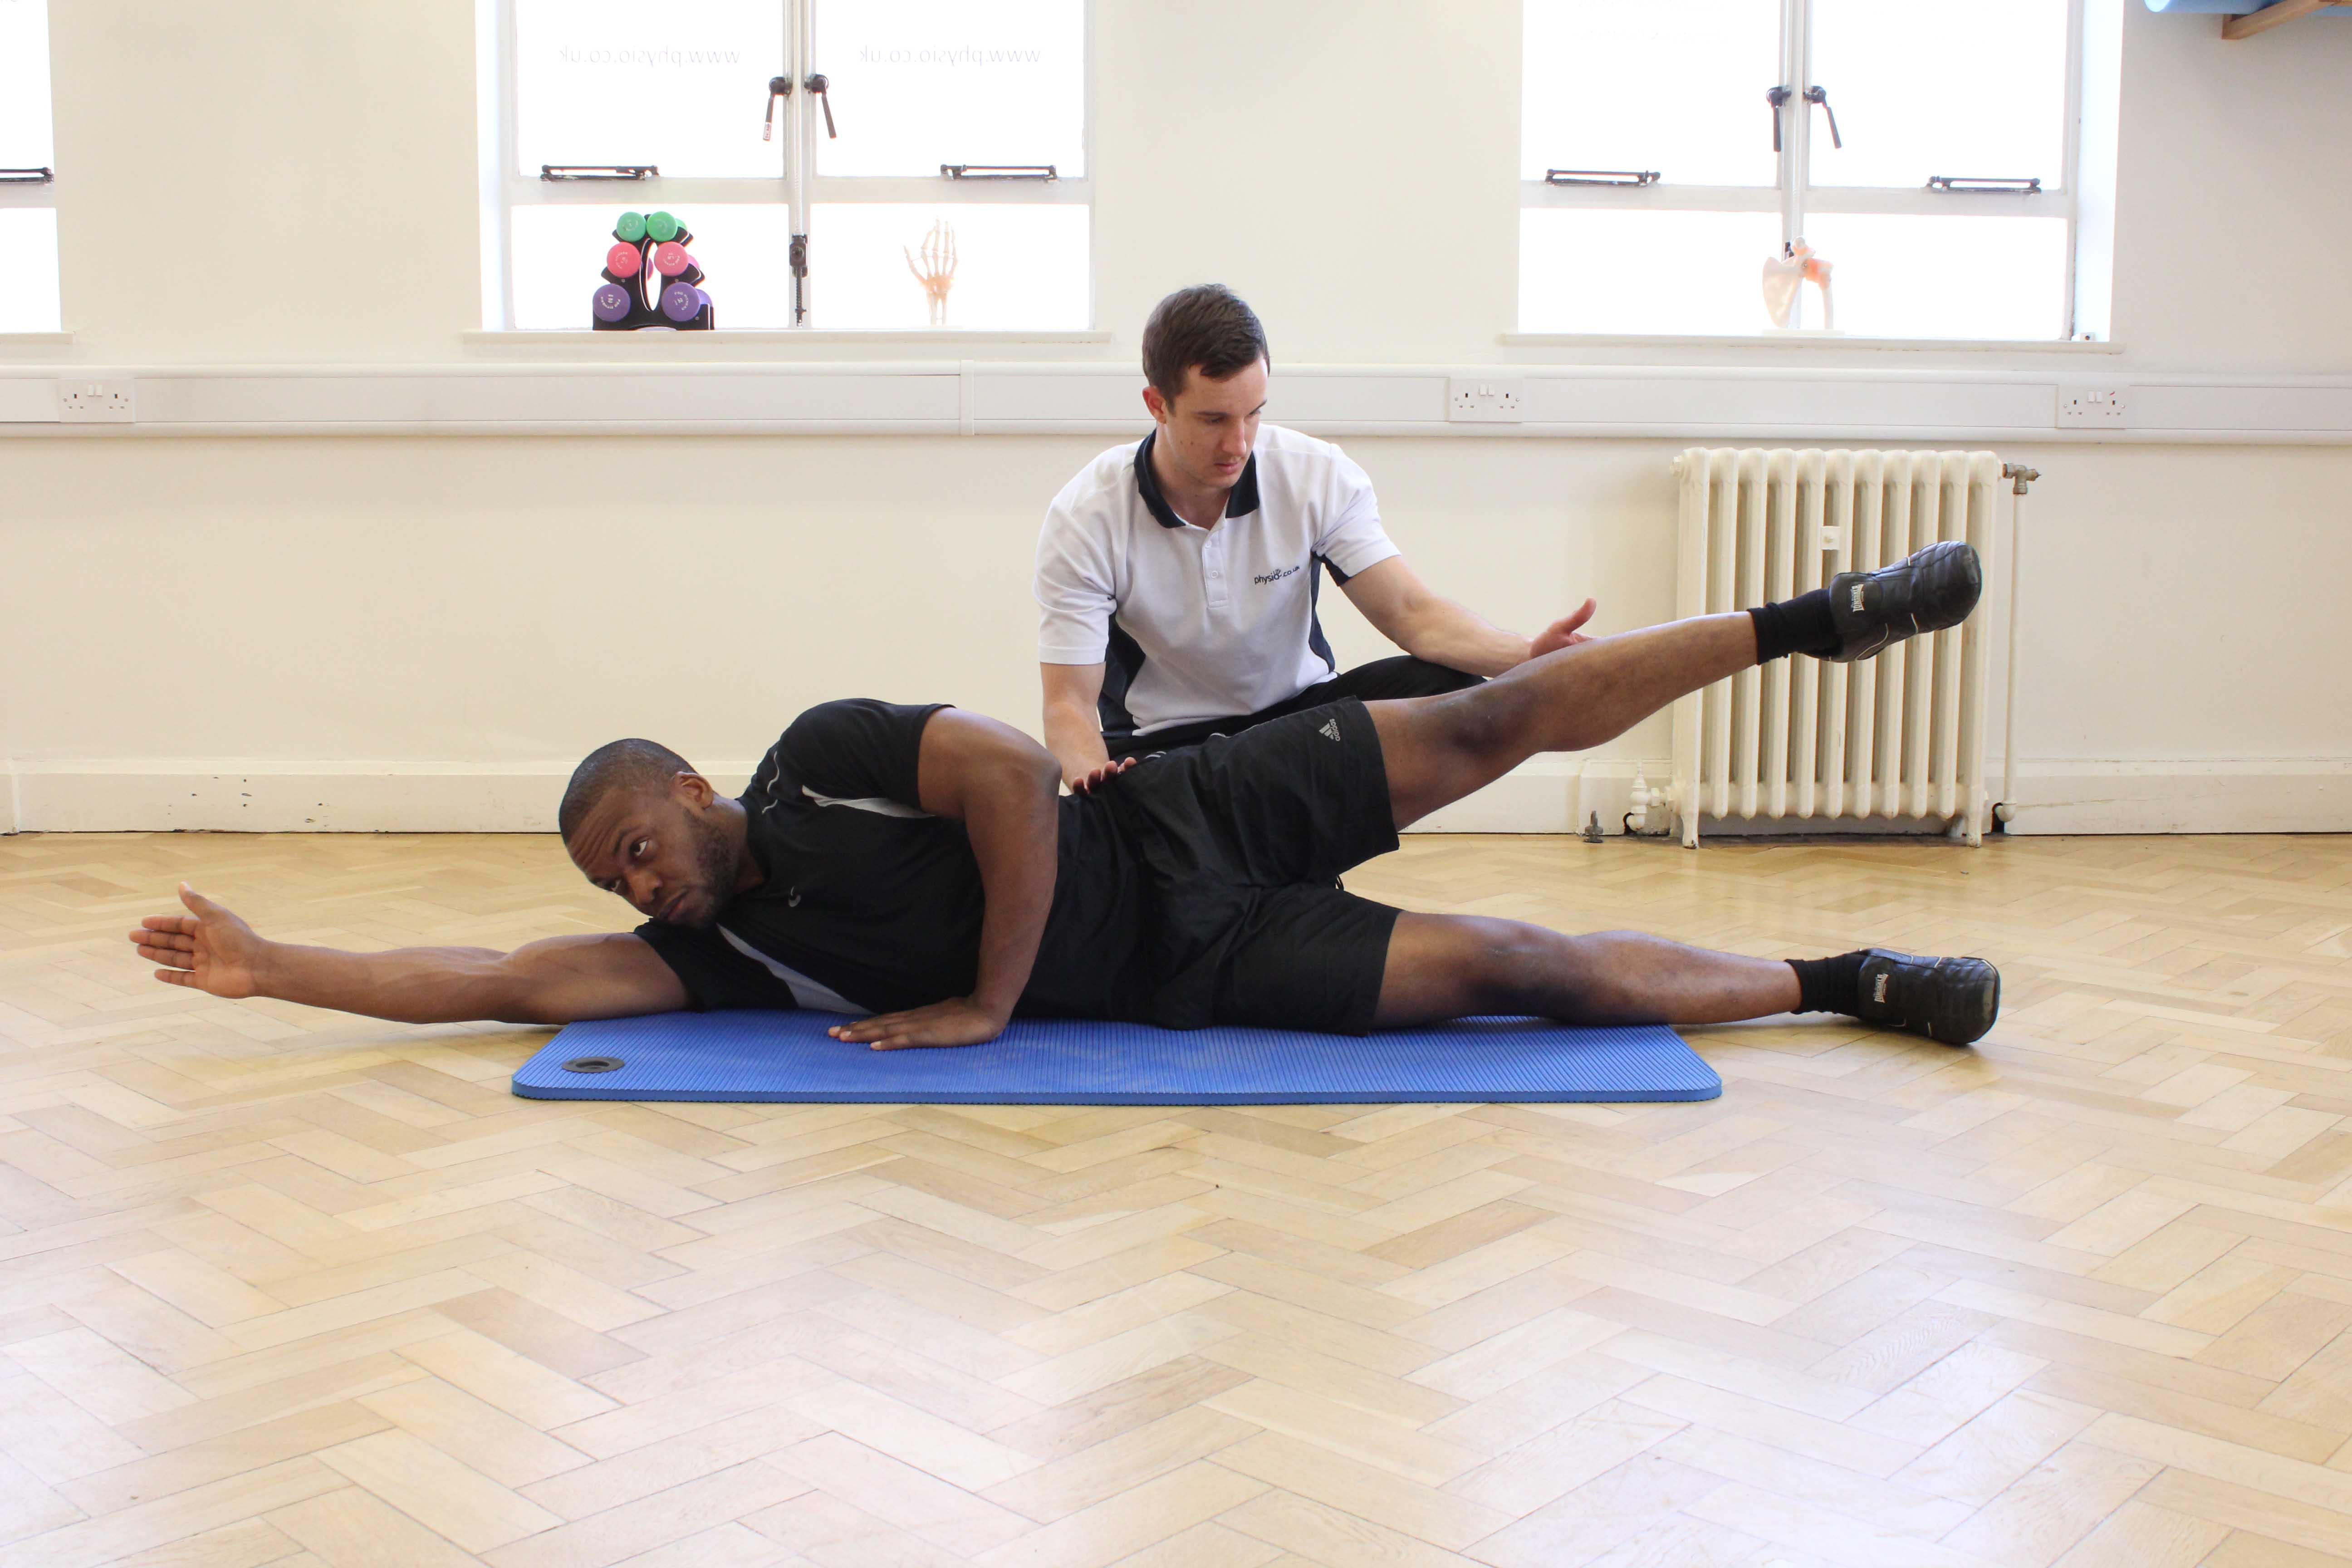 Progressive hip abductor strengthening exercises supervised by specialist MSK therapist